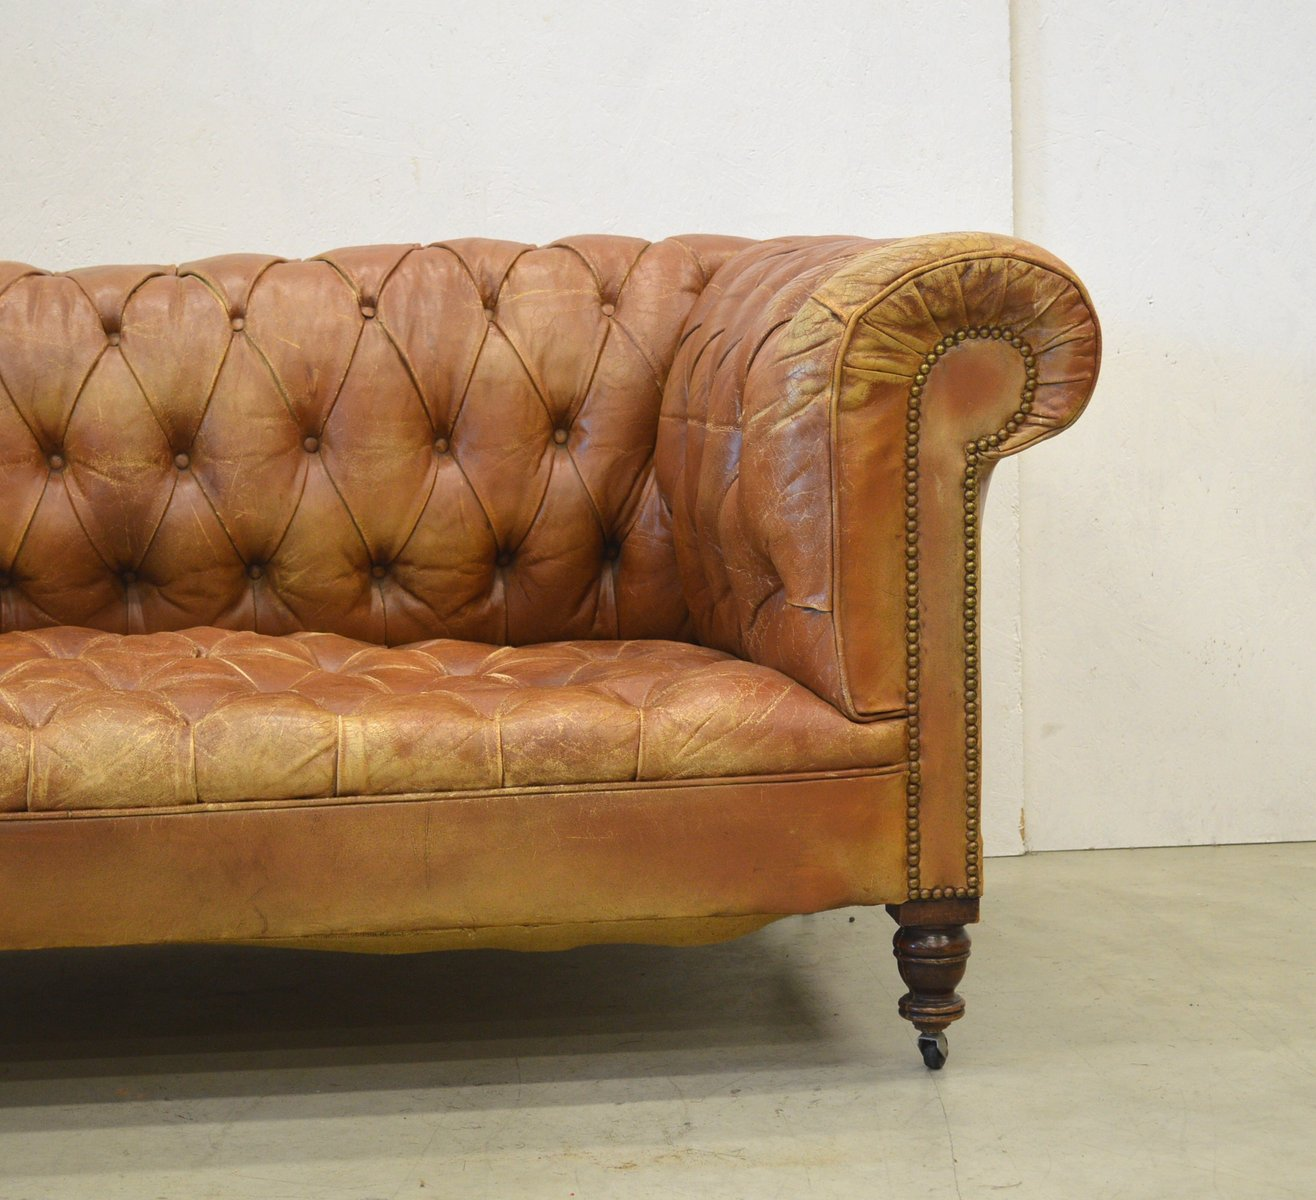 vintage english cognac art deco chesterfield two seater sofa 1920s for sale at pamono. Black Bedroom Furniture Sets. Home Design Ideas